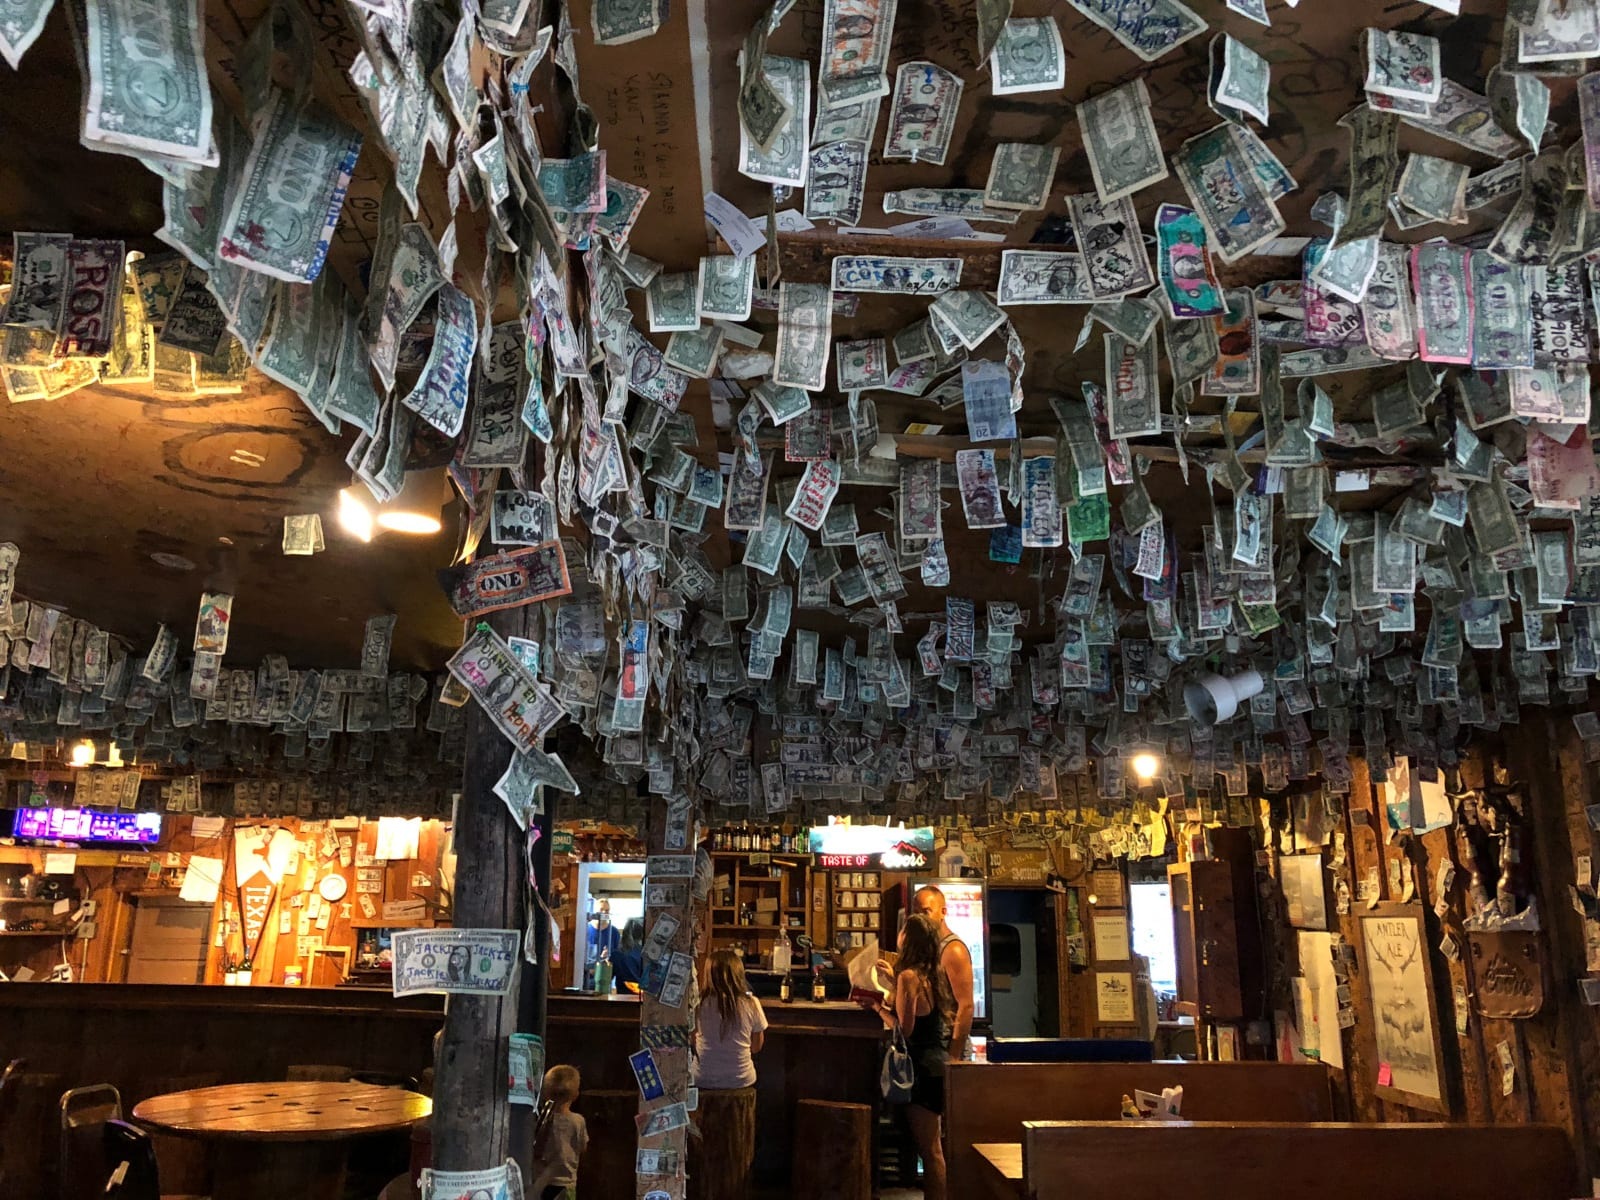 Bucksnort Saloon Dollar Bills on Ceiling Pine CO